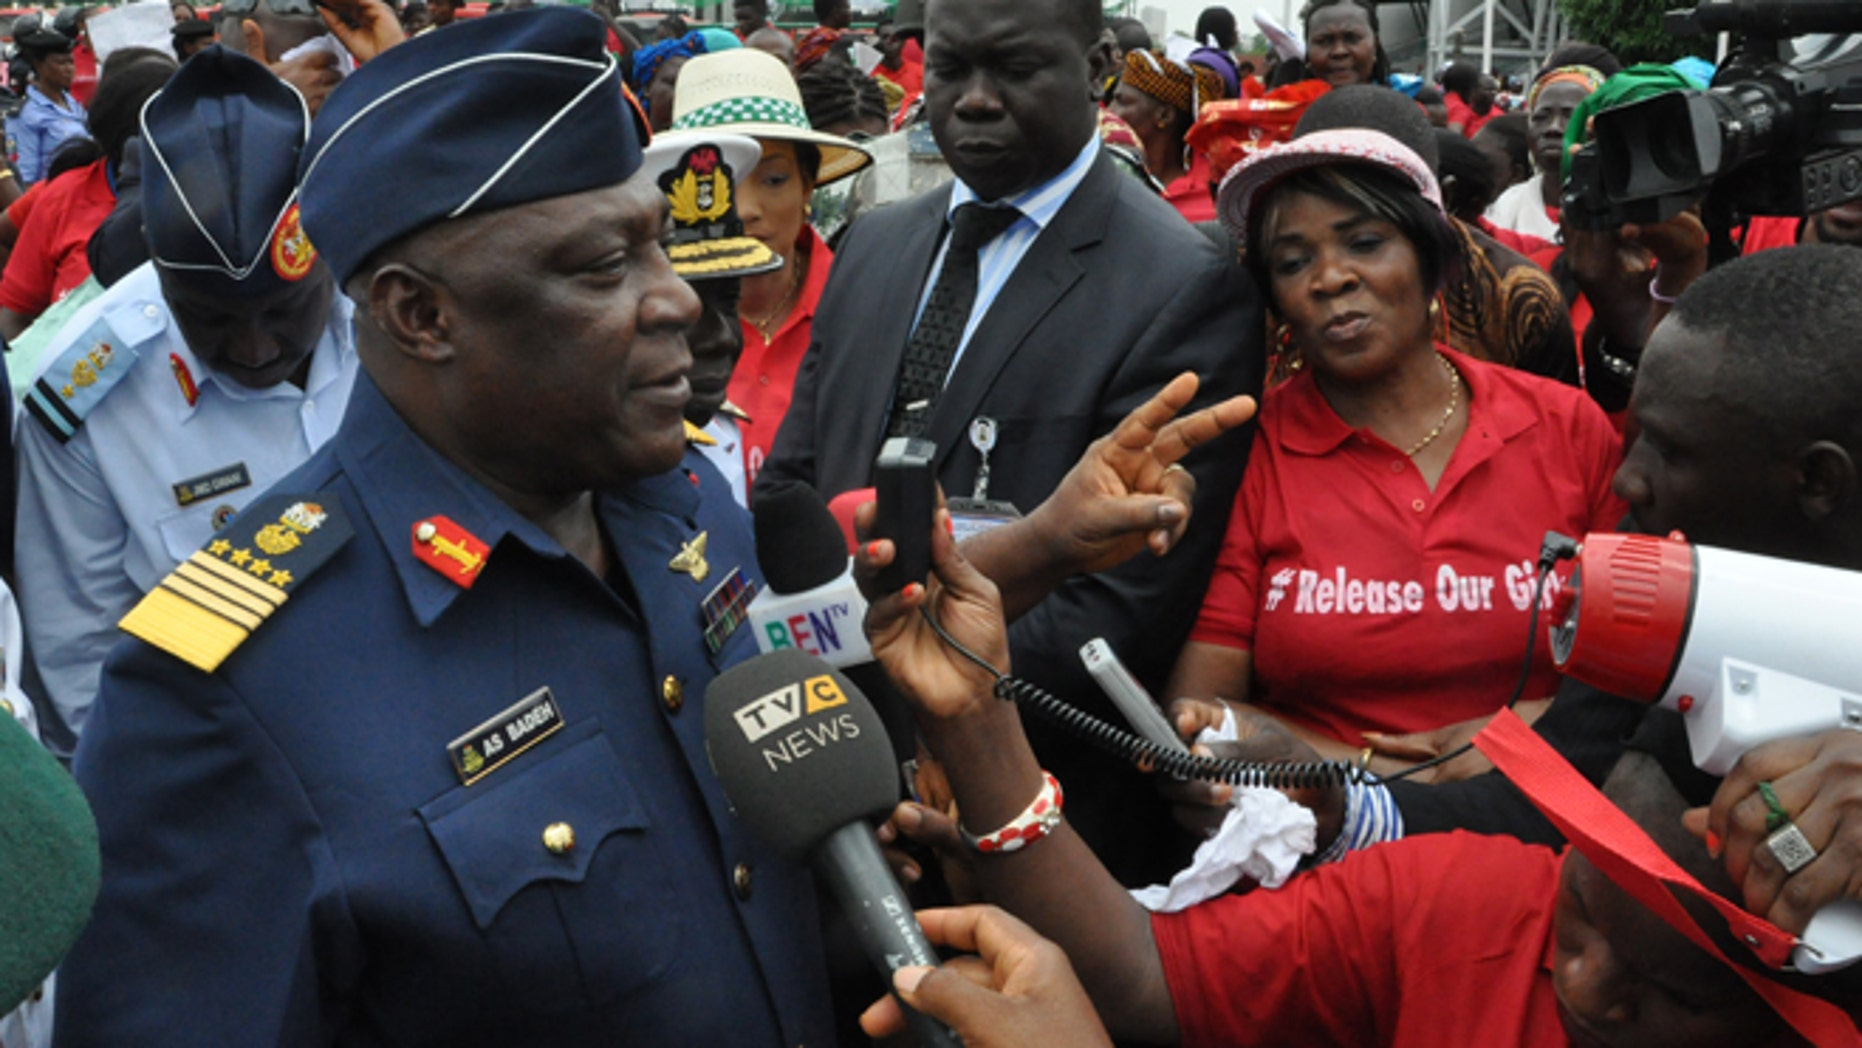 May 26, 2014: Nigeria's chief of defense staff Air Marshal Alex S. Badeh, center, speaks during a demonstration calling on the government to rescue the kidnapped girls of the government secondary school in Chibok, in Abuja, Nigeria, Monday.